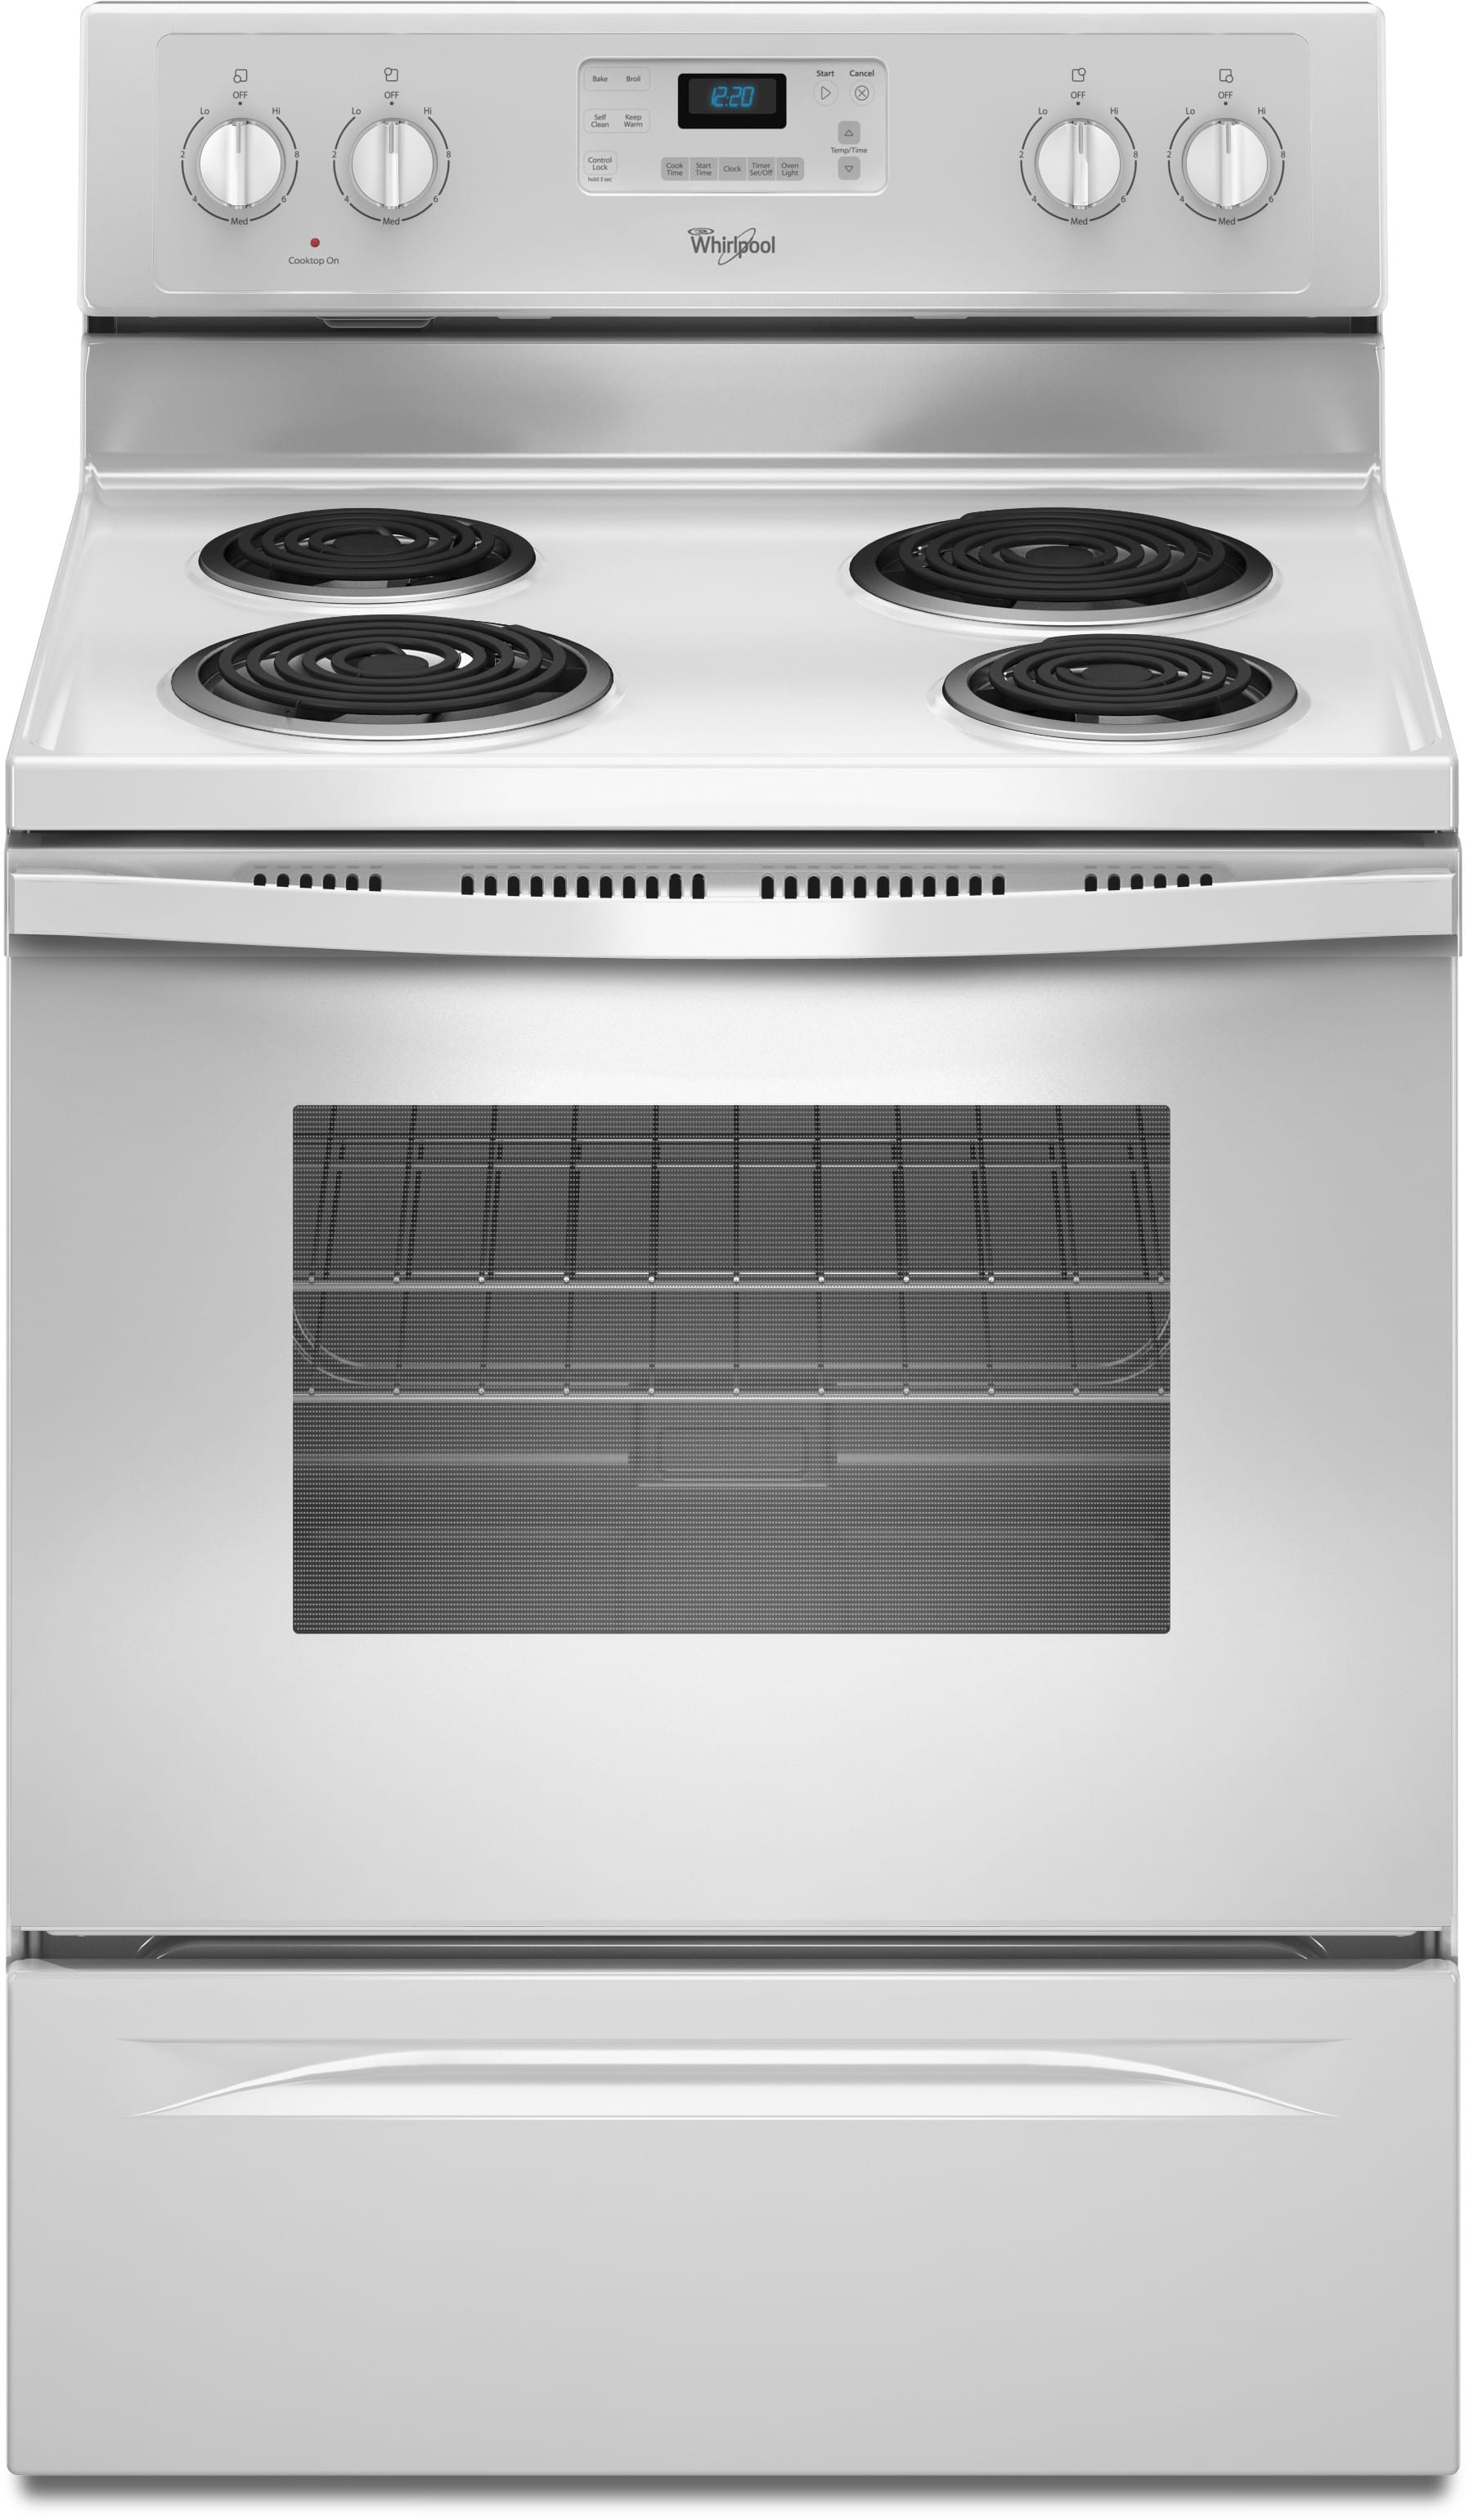 Whirlpool Wfc310s0ew 30 Inch Freestanding Electric Range